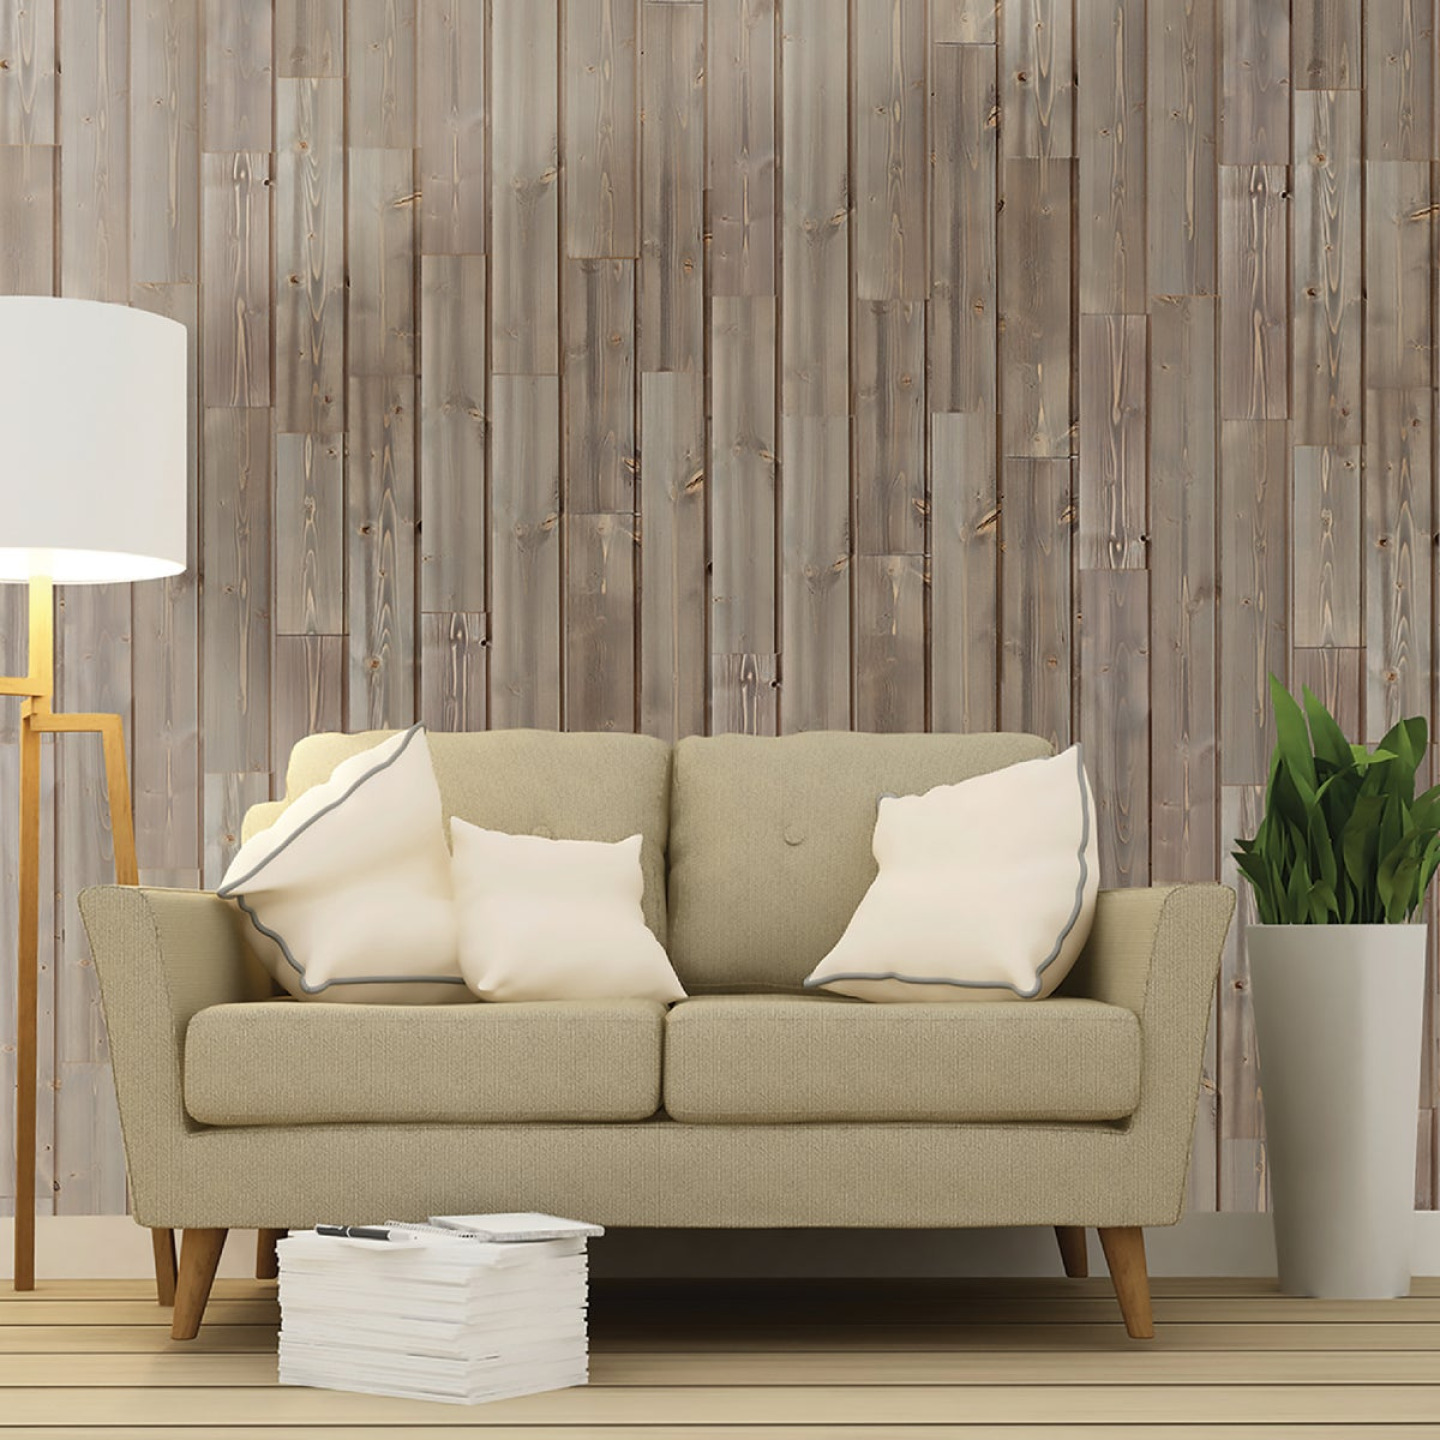 Global Product Sourcing 5.375 In W. x 5/16 In. Thick Gray Reclaimed Wood Shiplap Board Image 3